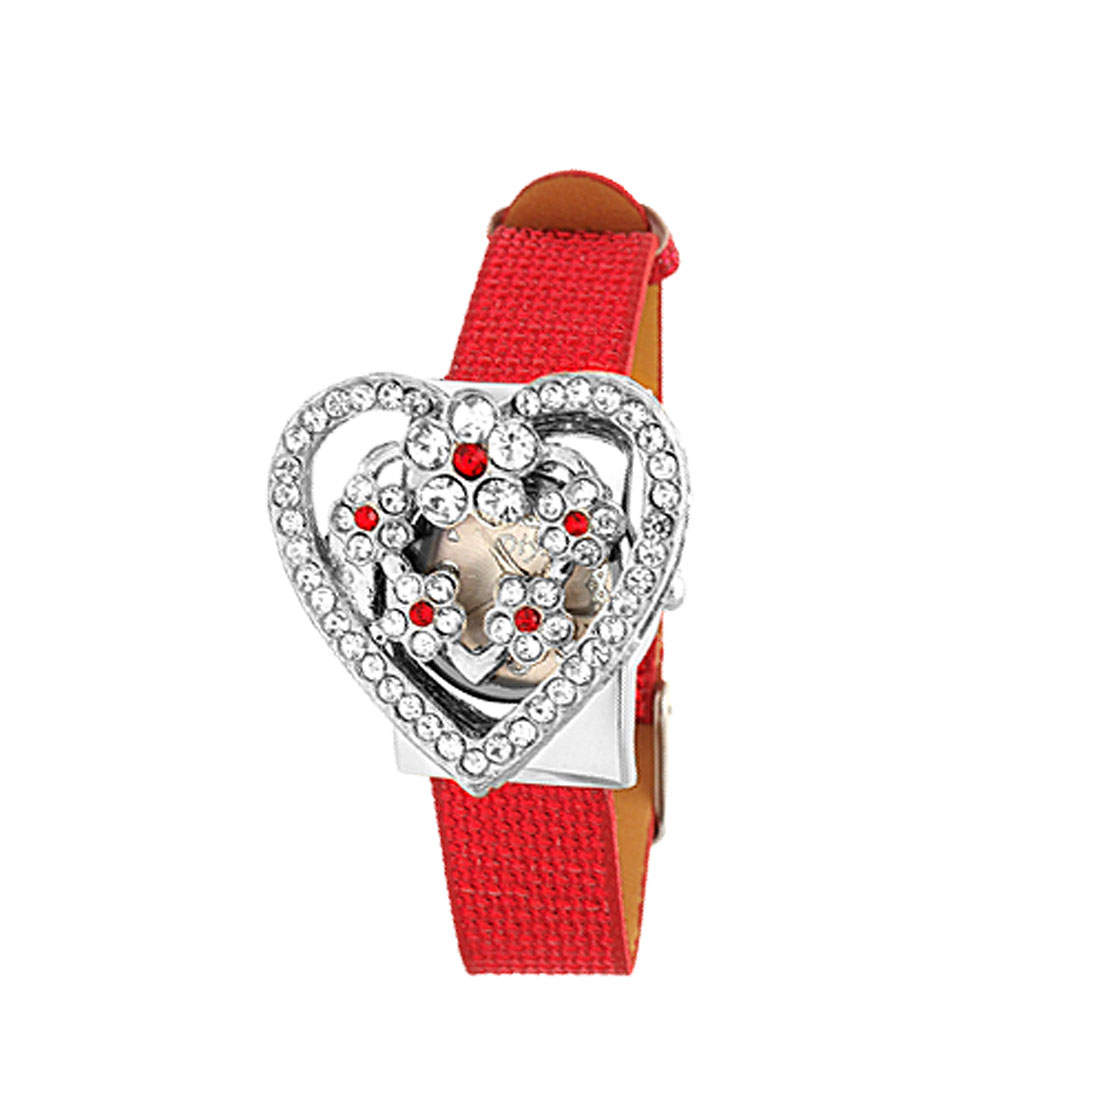 Fashion Jewelry Red Rhinestone Heart Watchcase Leather Band Ladies Watch